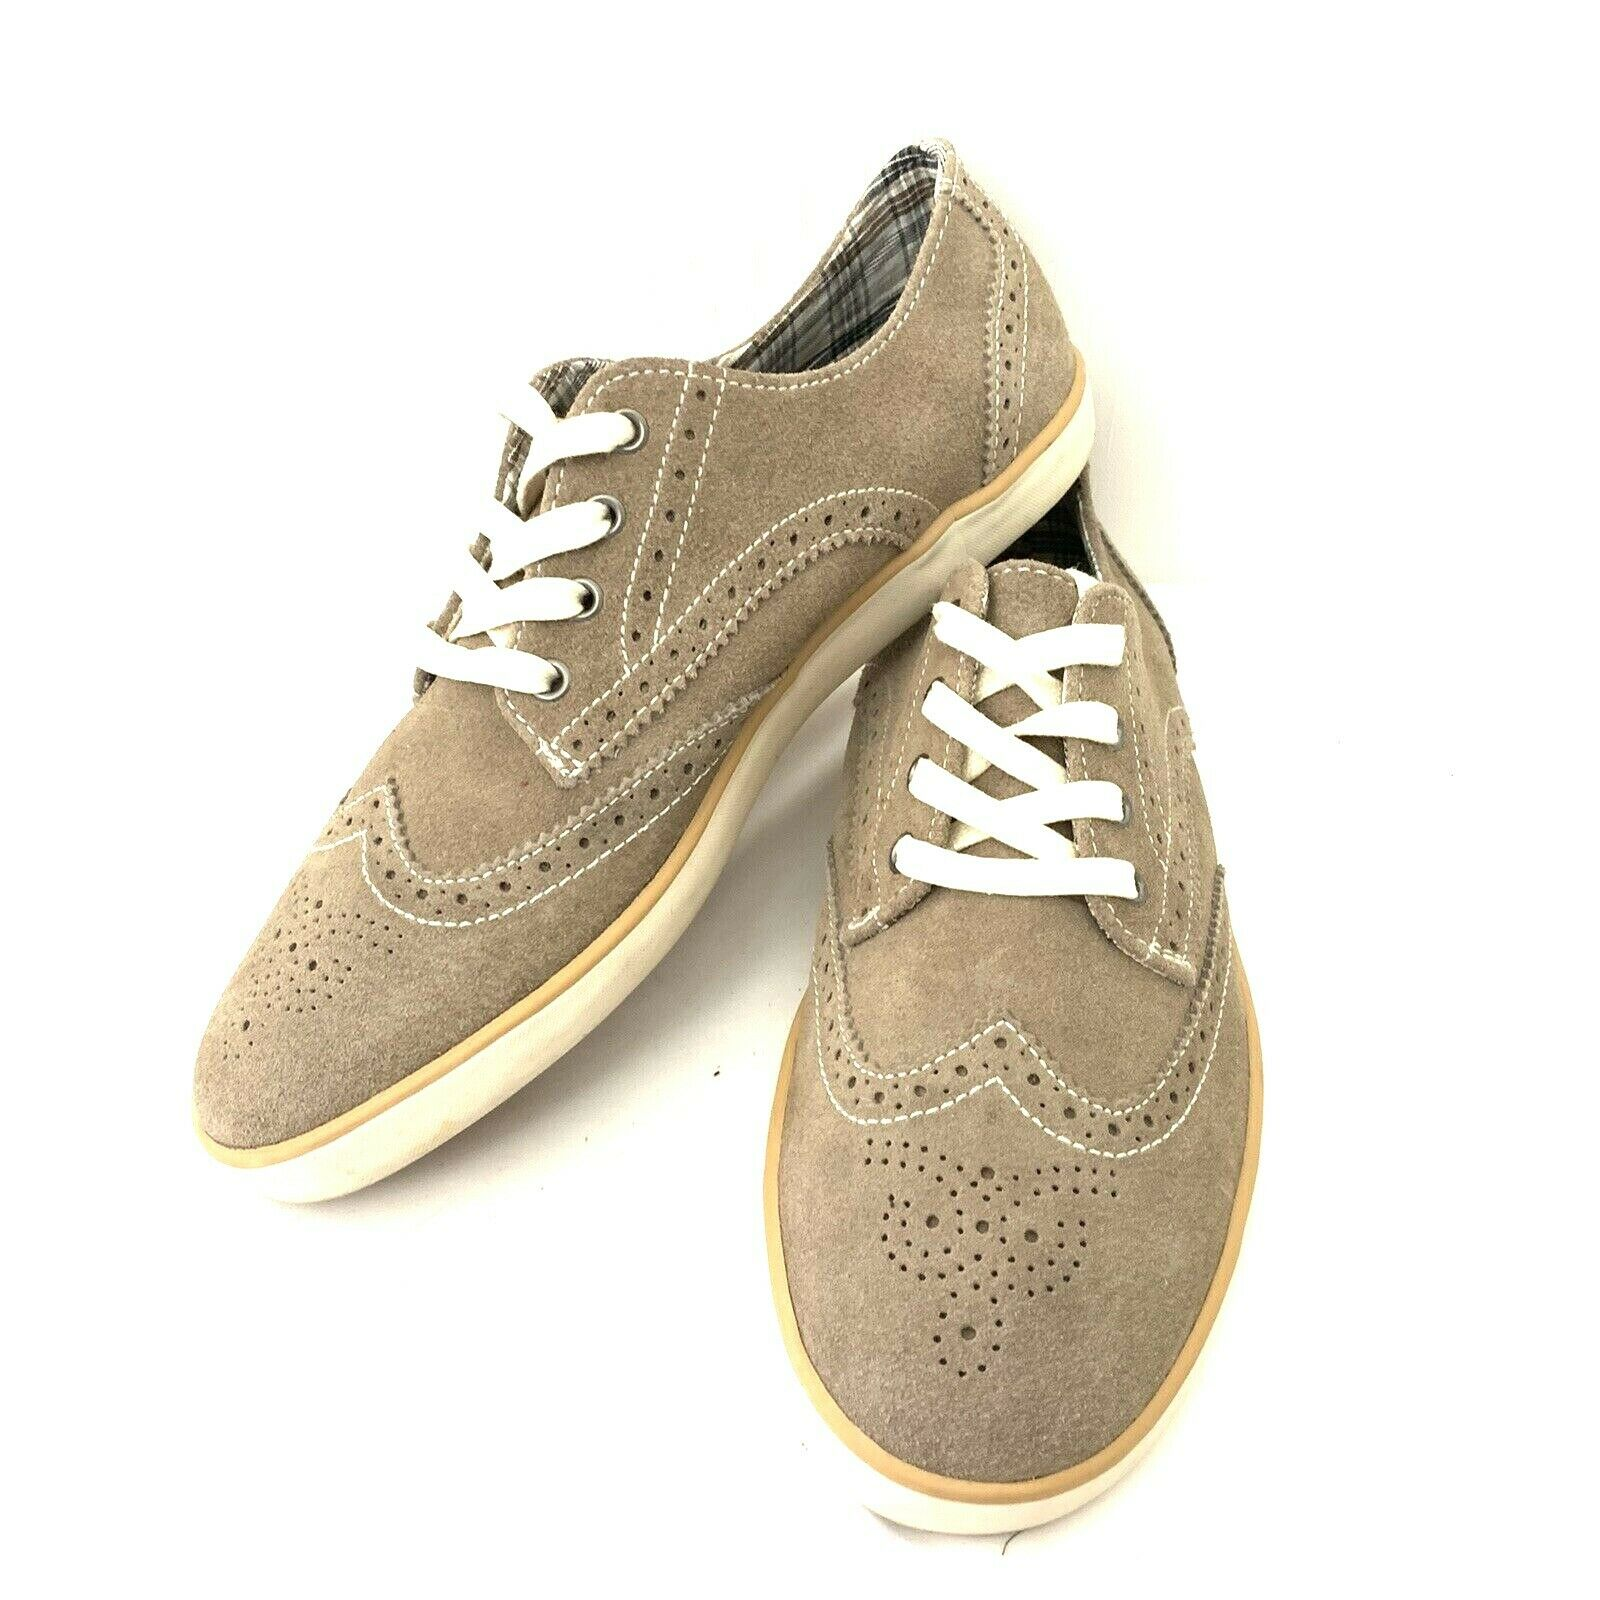 Men's 9.5M Clarks Sutter Tan Suede Leather Wingtip Shoes Sneakers Lace-Up Casual